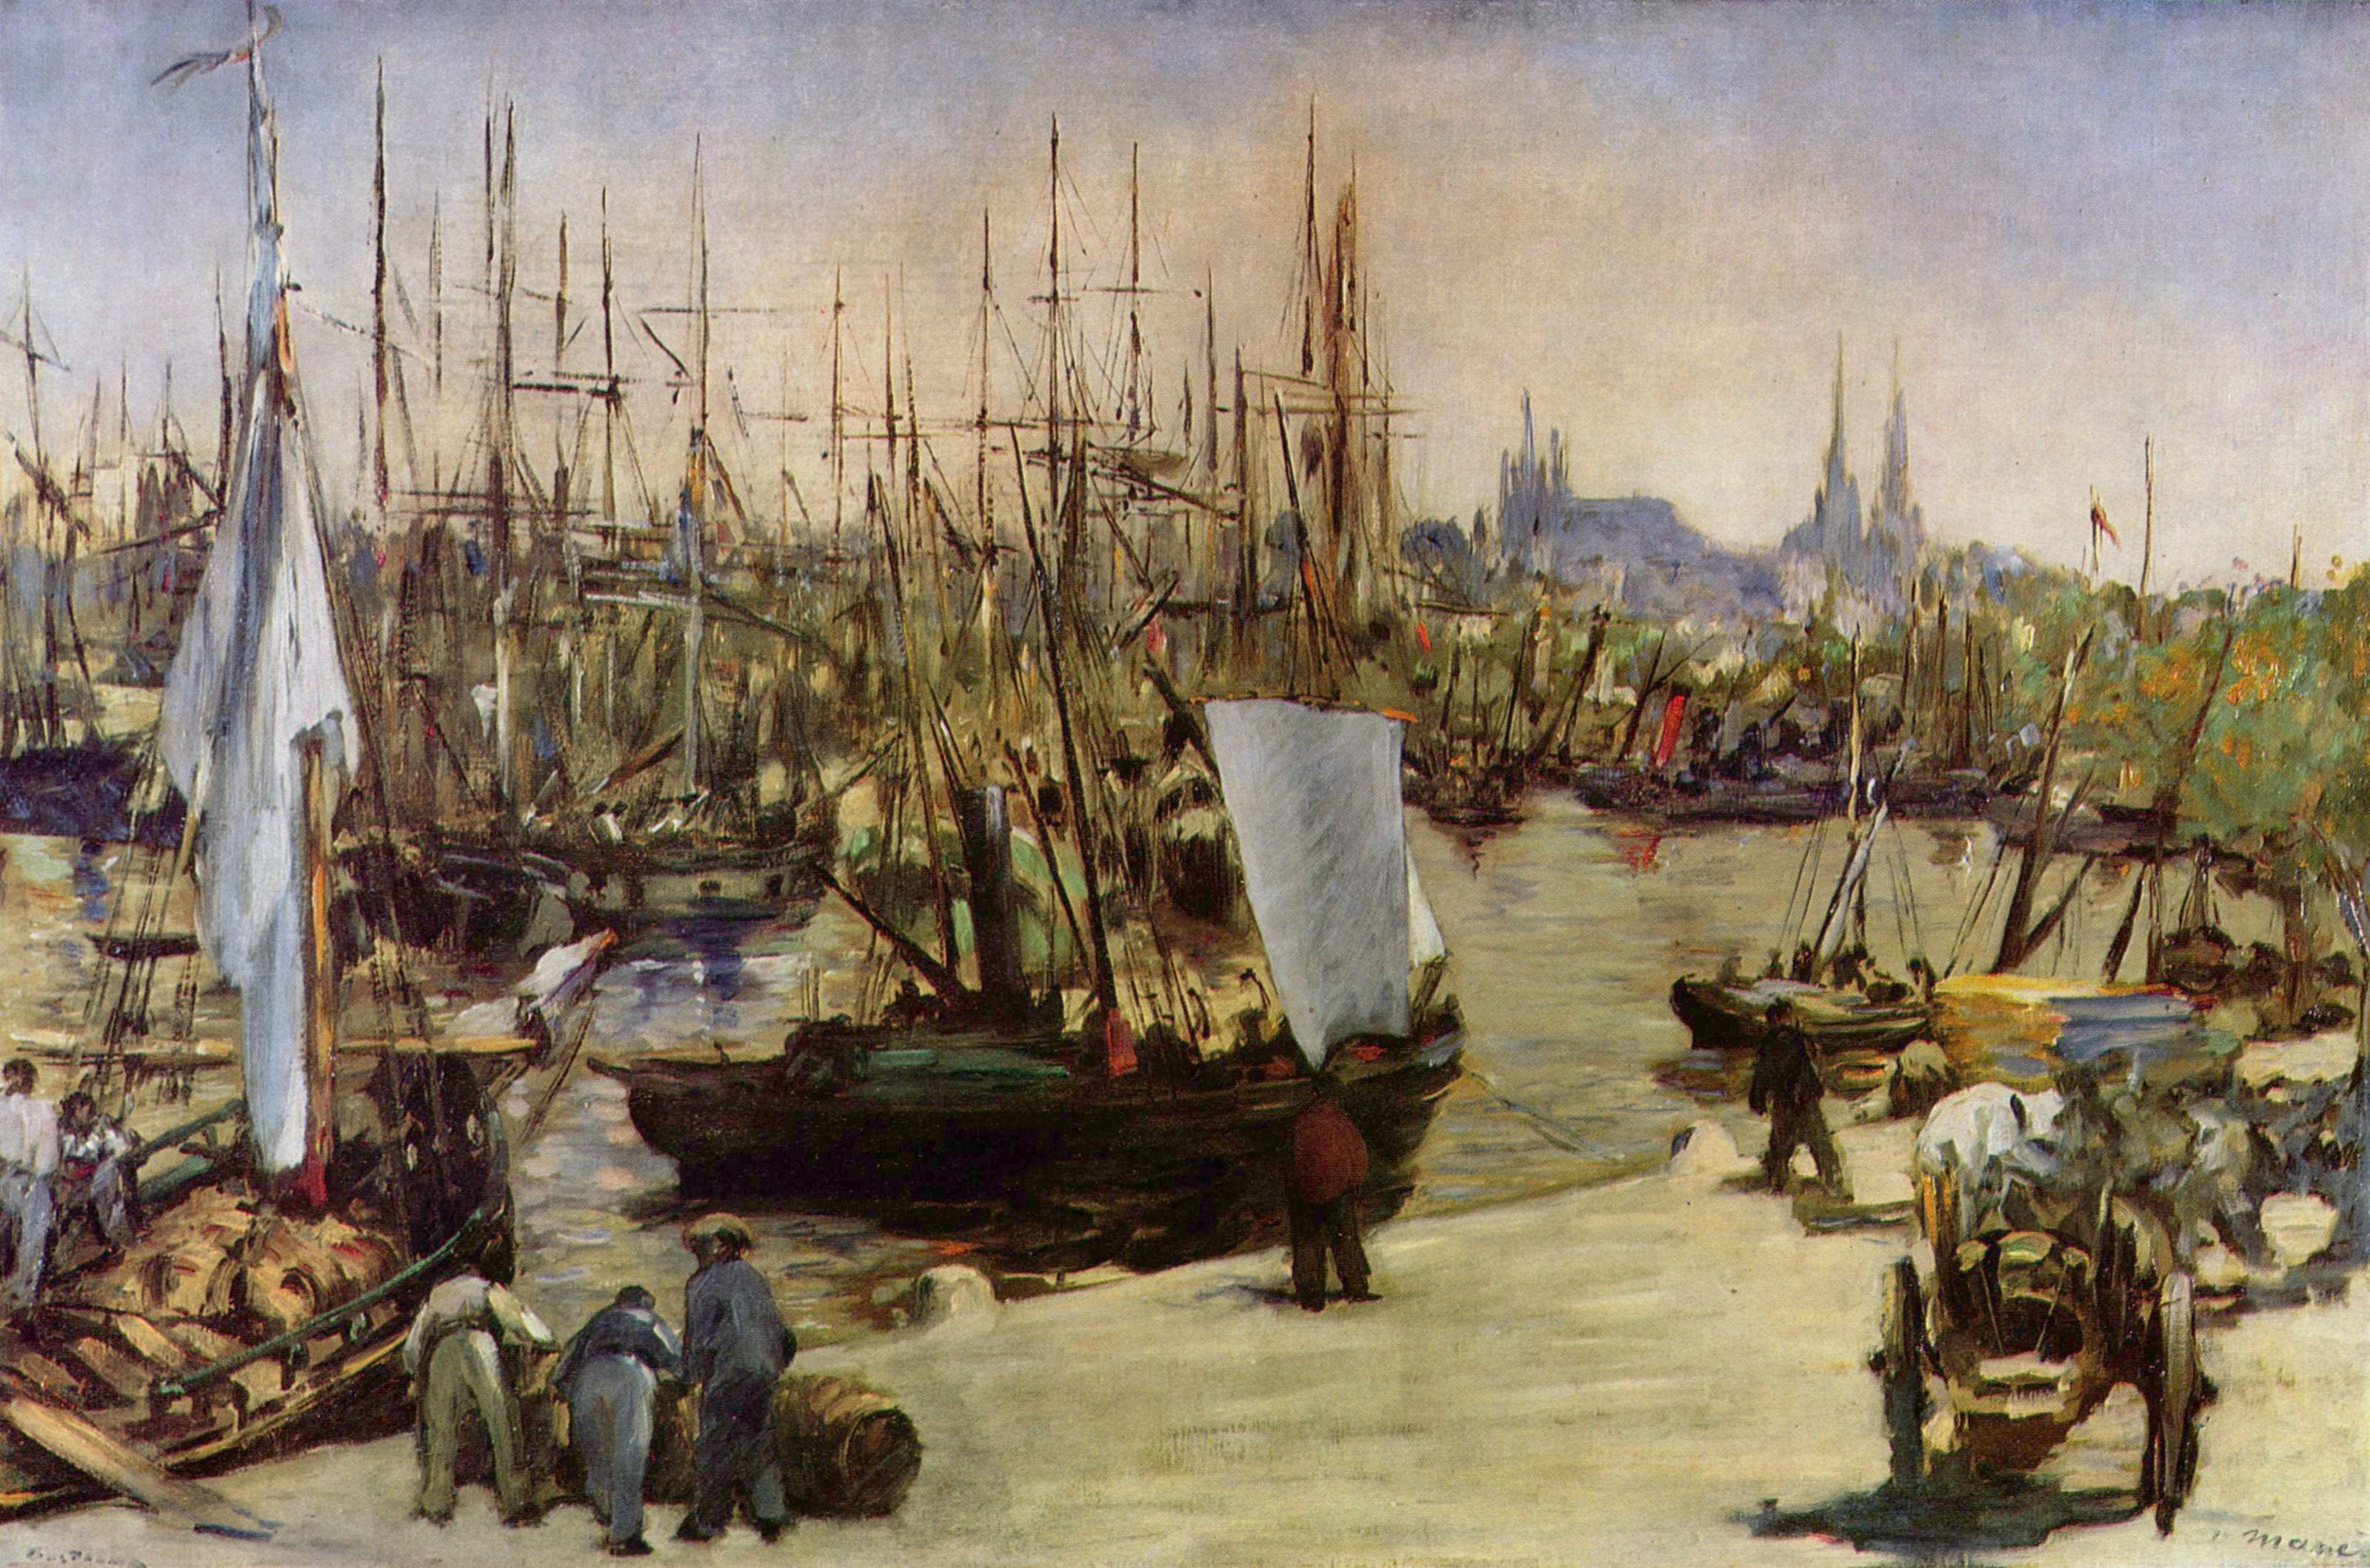 Edouard Manet's Port de Bordeaux: considered by many as the